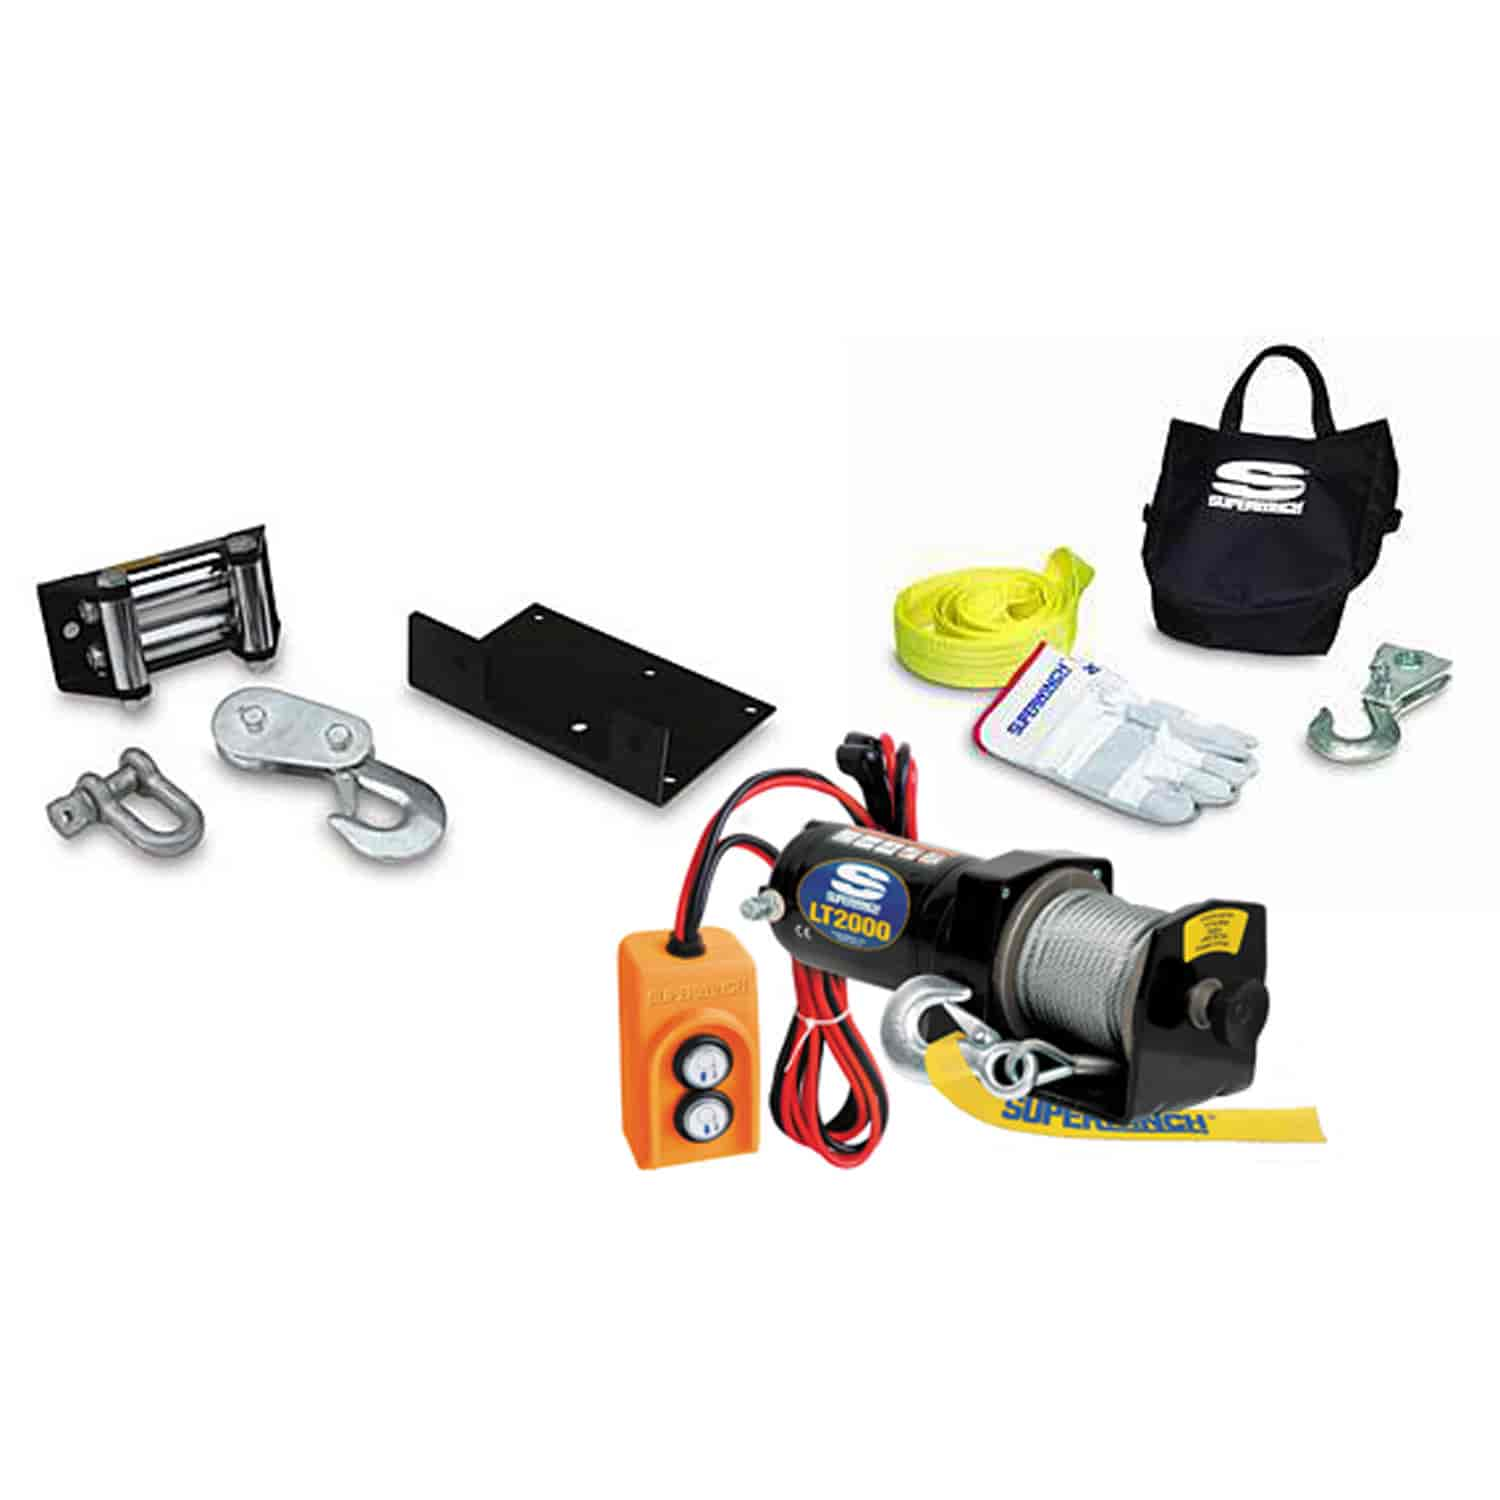 Superwinch 1220210K2 - Superwinch LT2000 Winch